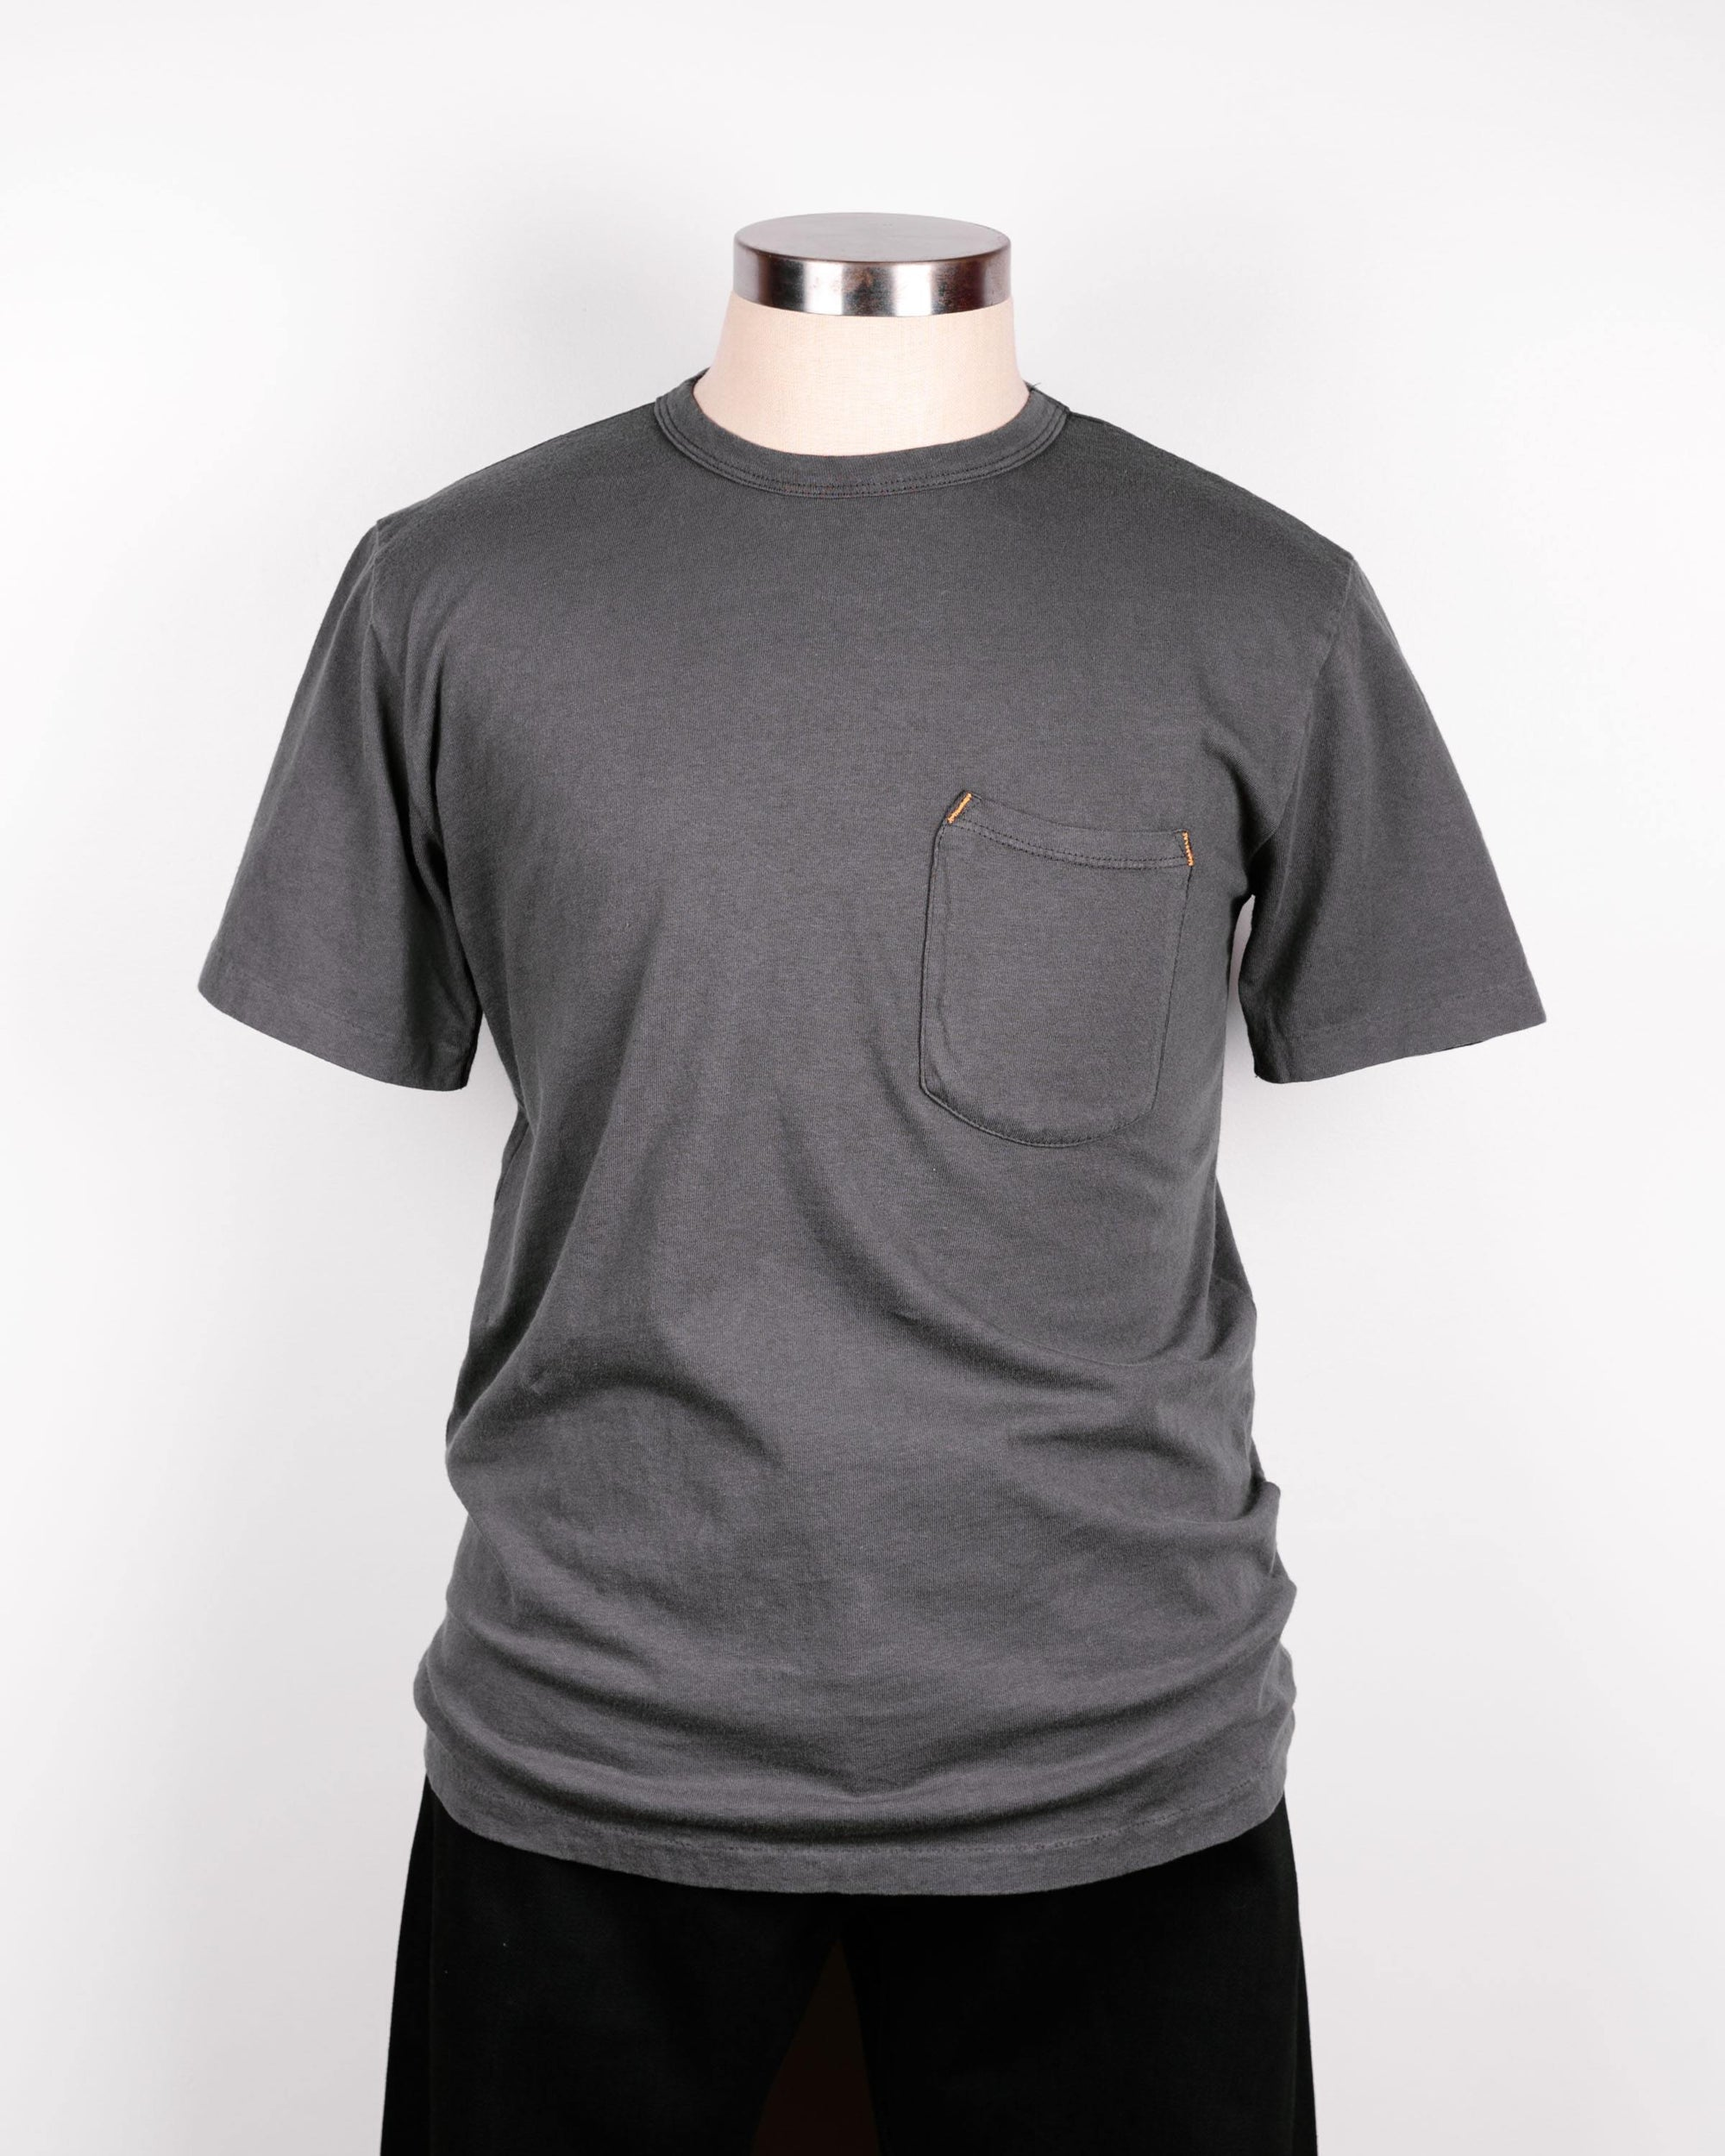 The Freenote Cloth 9oz short sleeved T-shirt in Midnight is shown with a breast pocket with lighter thread on the top of the pocket.